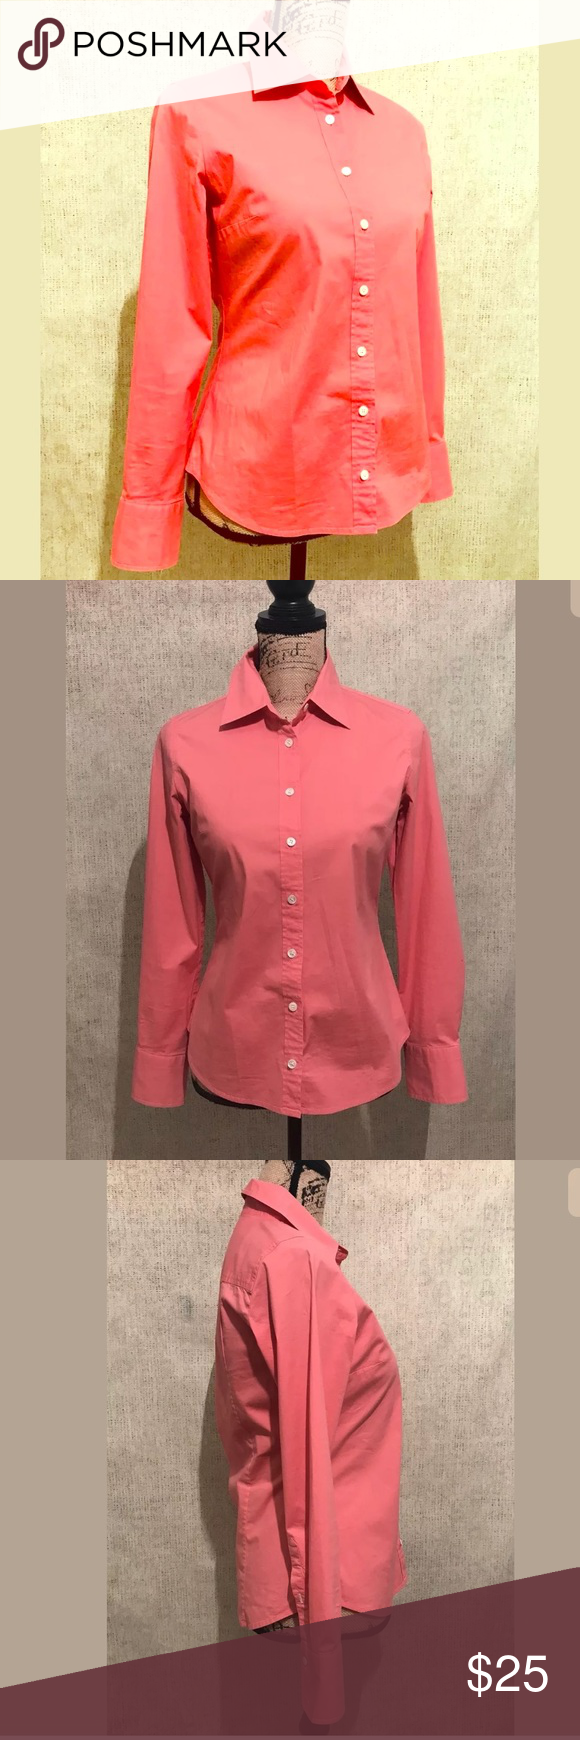 J Crew Coral Pink Button Career Work Dress Shirt In 2018 My Posh